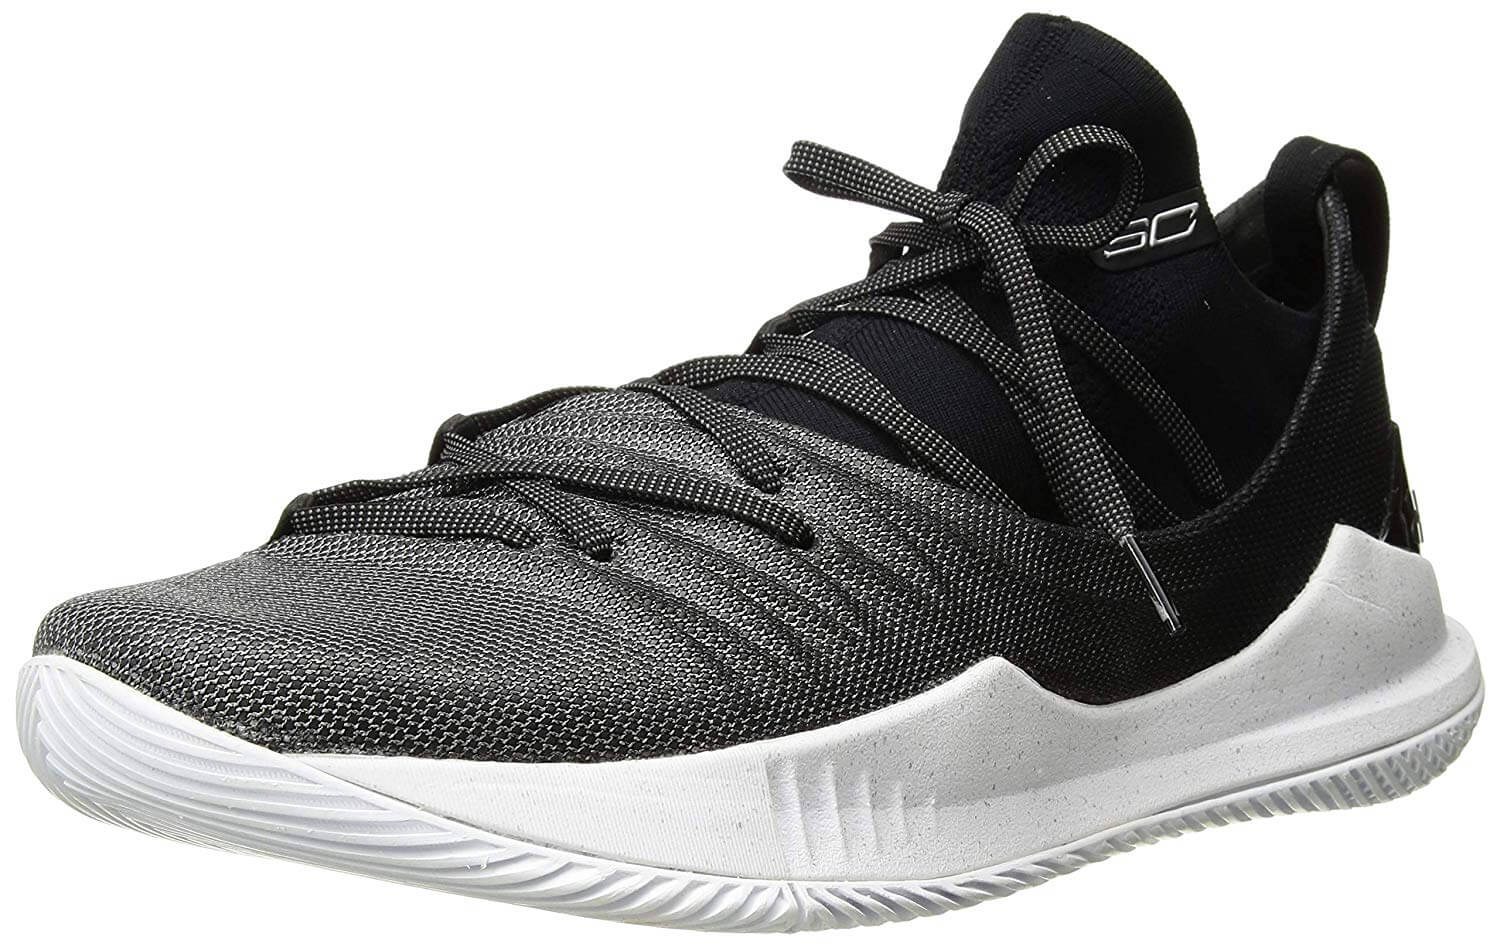 Under Armour Curry 5 Reviewed \u0026 Rated